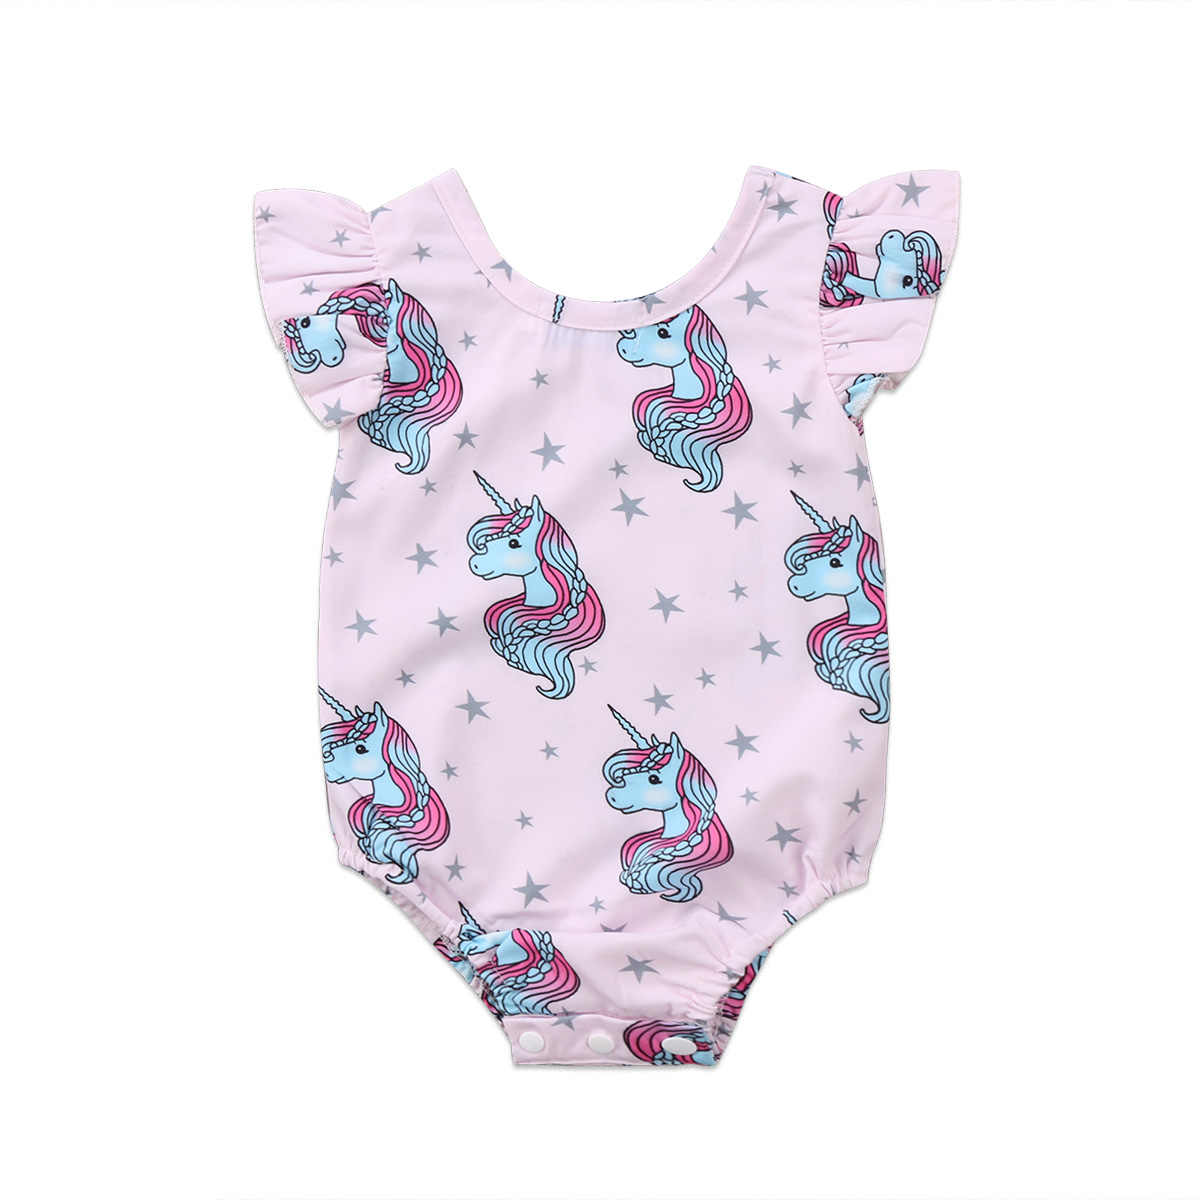 Toddler Girls Sleeveless Unicorn Romper Cotton Bodysuit Jumpsuit Clothes Outfits